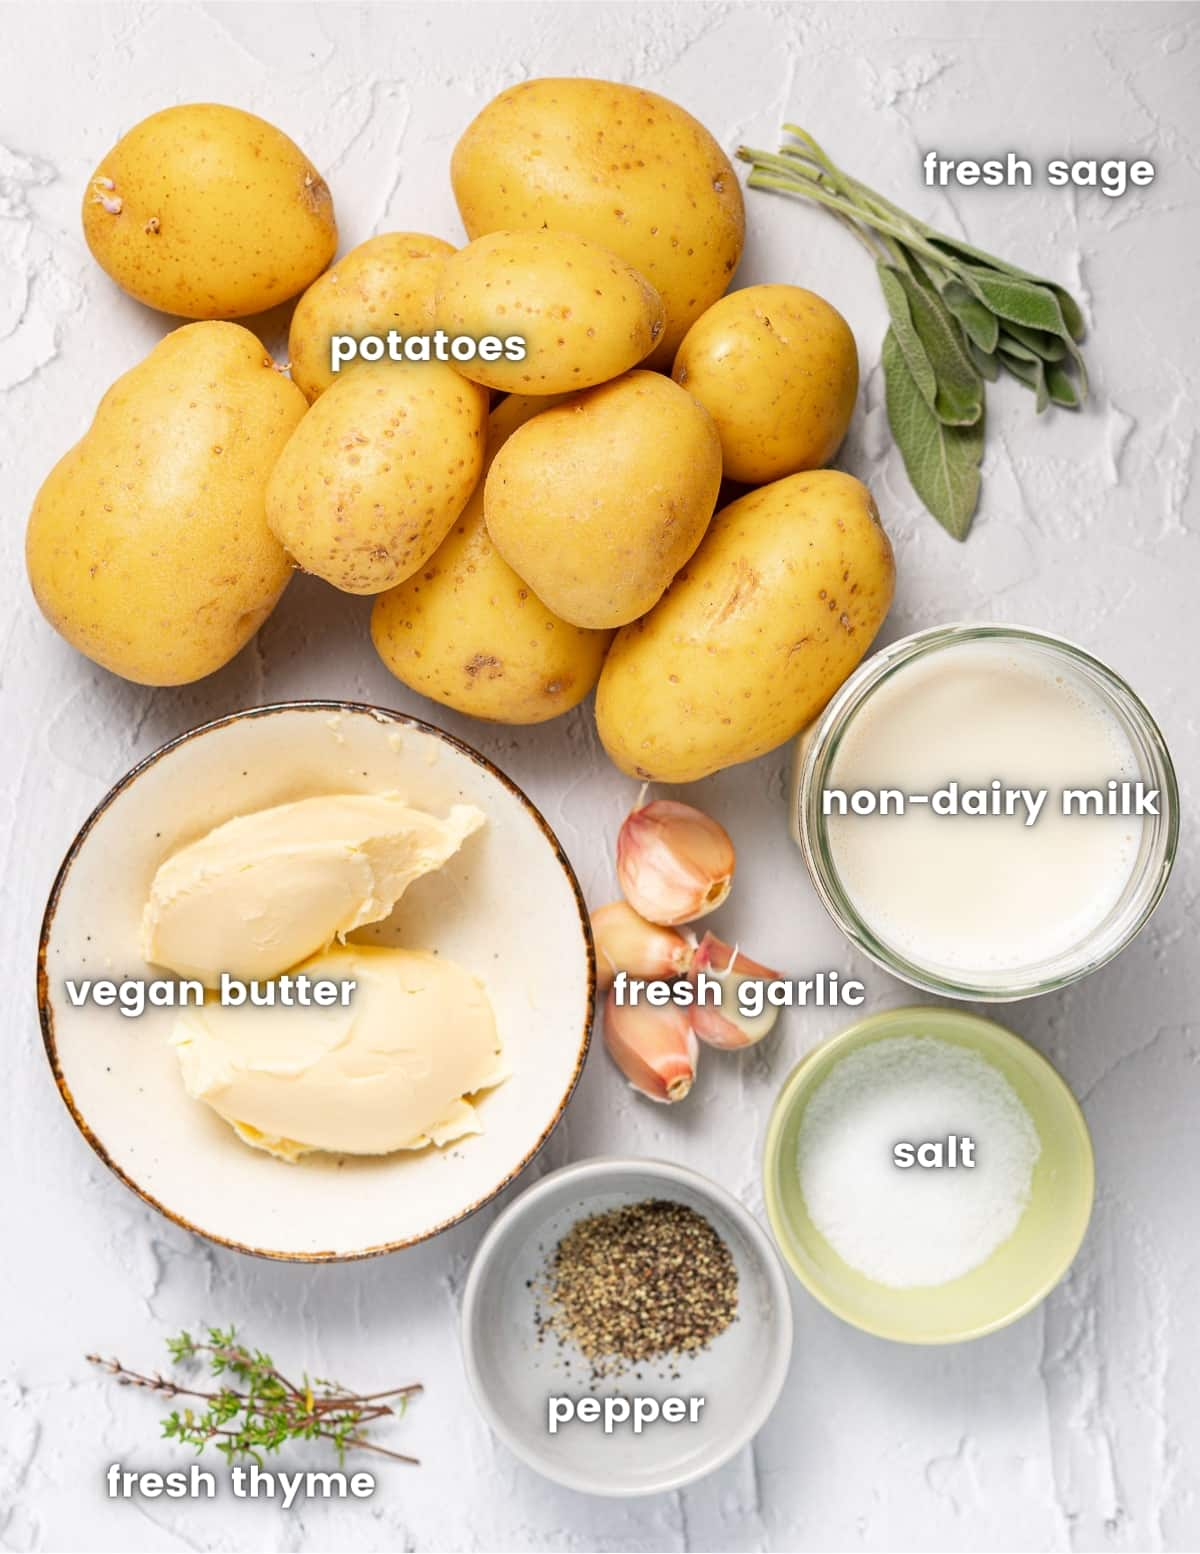 ingredients for vegan mashed potatoes as per the listed ingredients